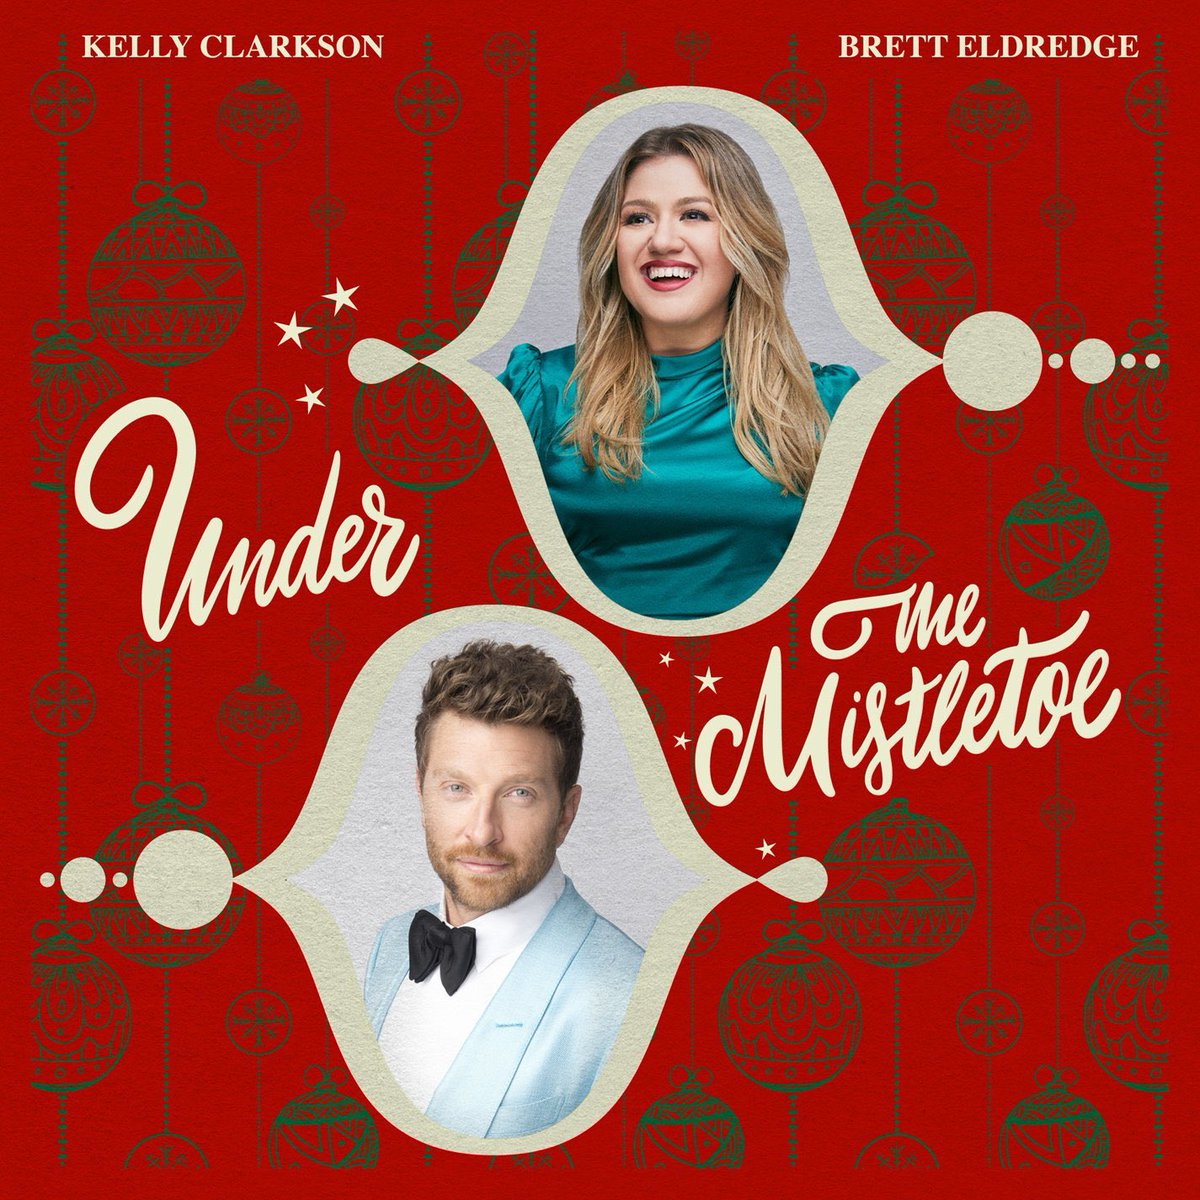 Hey, @OnAirRomeo! Play Under The Mistletoe by @kellyclarkson & @BrettEldrege on the next hour possibly, Please?! Thank you. 👩‍🦳🎼📻🙏🏻😉 -Hannah- #MostRequestedLive #KellyOnRomeo #UnderTheMistletoe   #REQUEST #TeamKelly